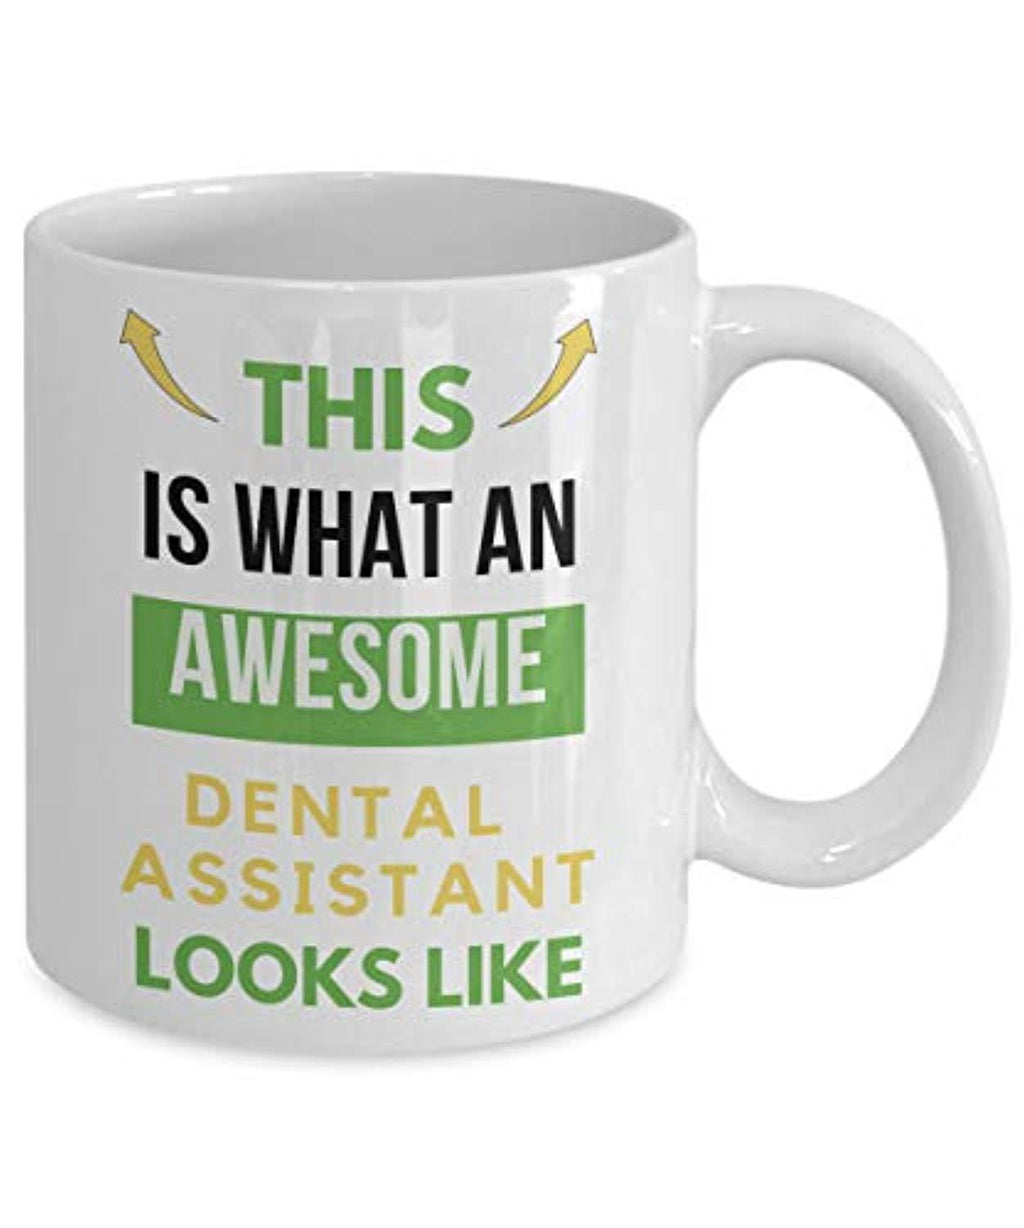 This Is What An Awesome Dental Assistant Looks Like Funny Coffee Mug